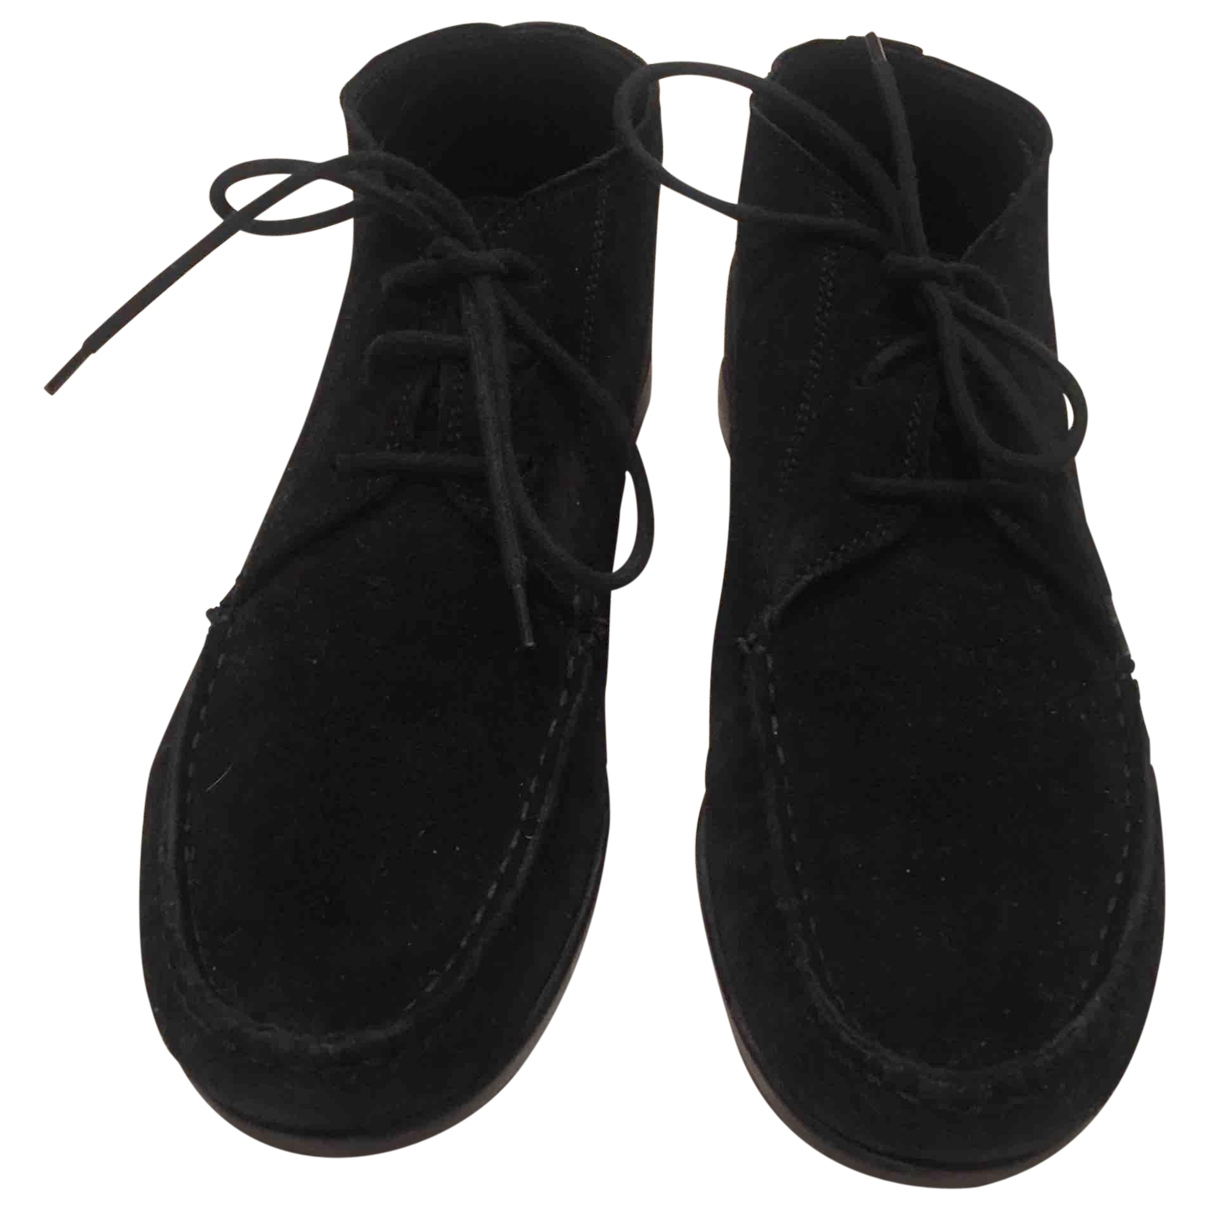 Agl \N Black Suede Ankle boots for Women 39.5 EU